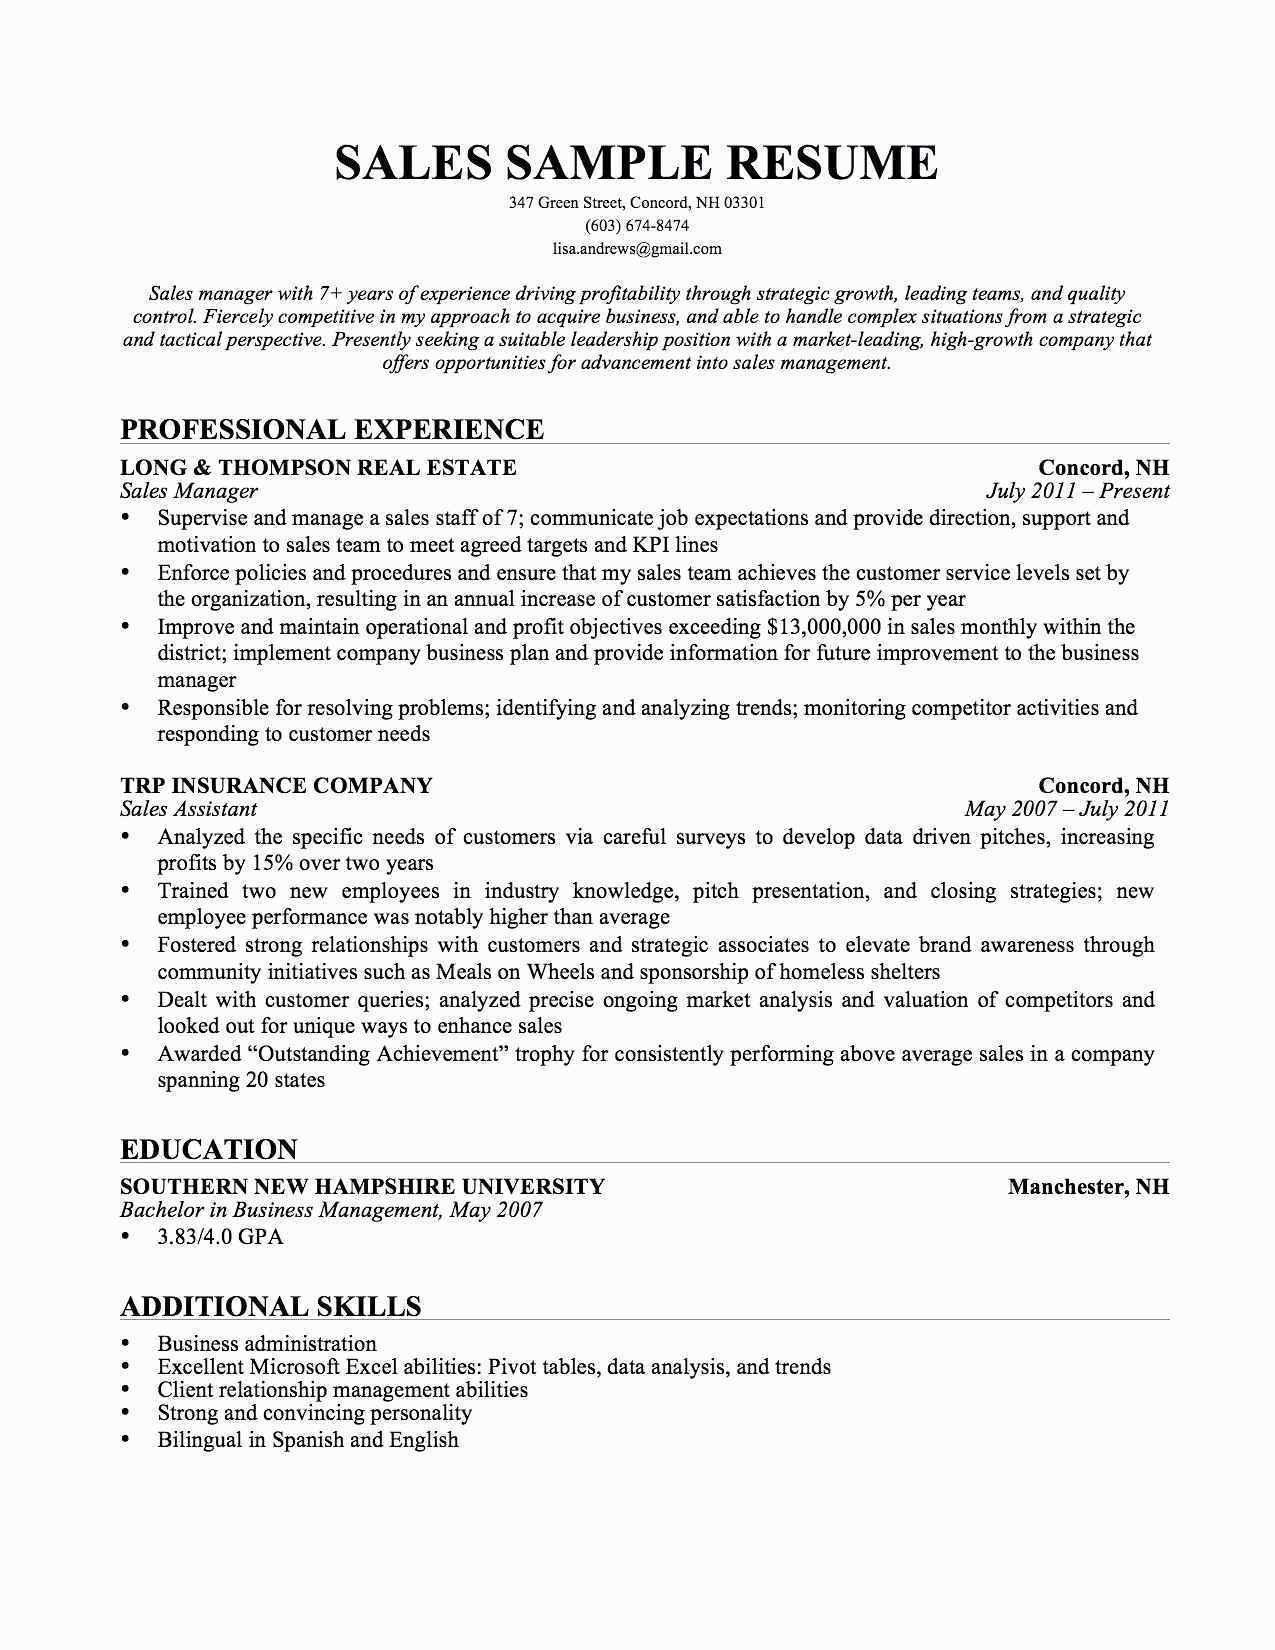 culinary resume template example-Chef Resume Samples New Skills And Abilities Resume Examples Beautiful Chef Resume Fresh 20-m